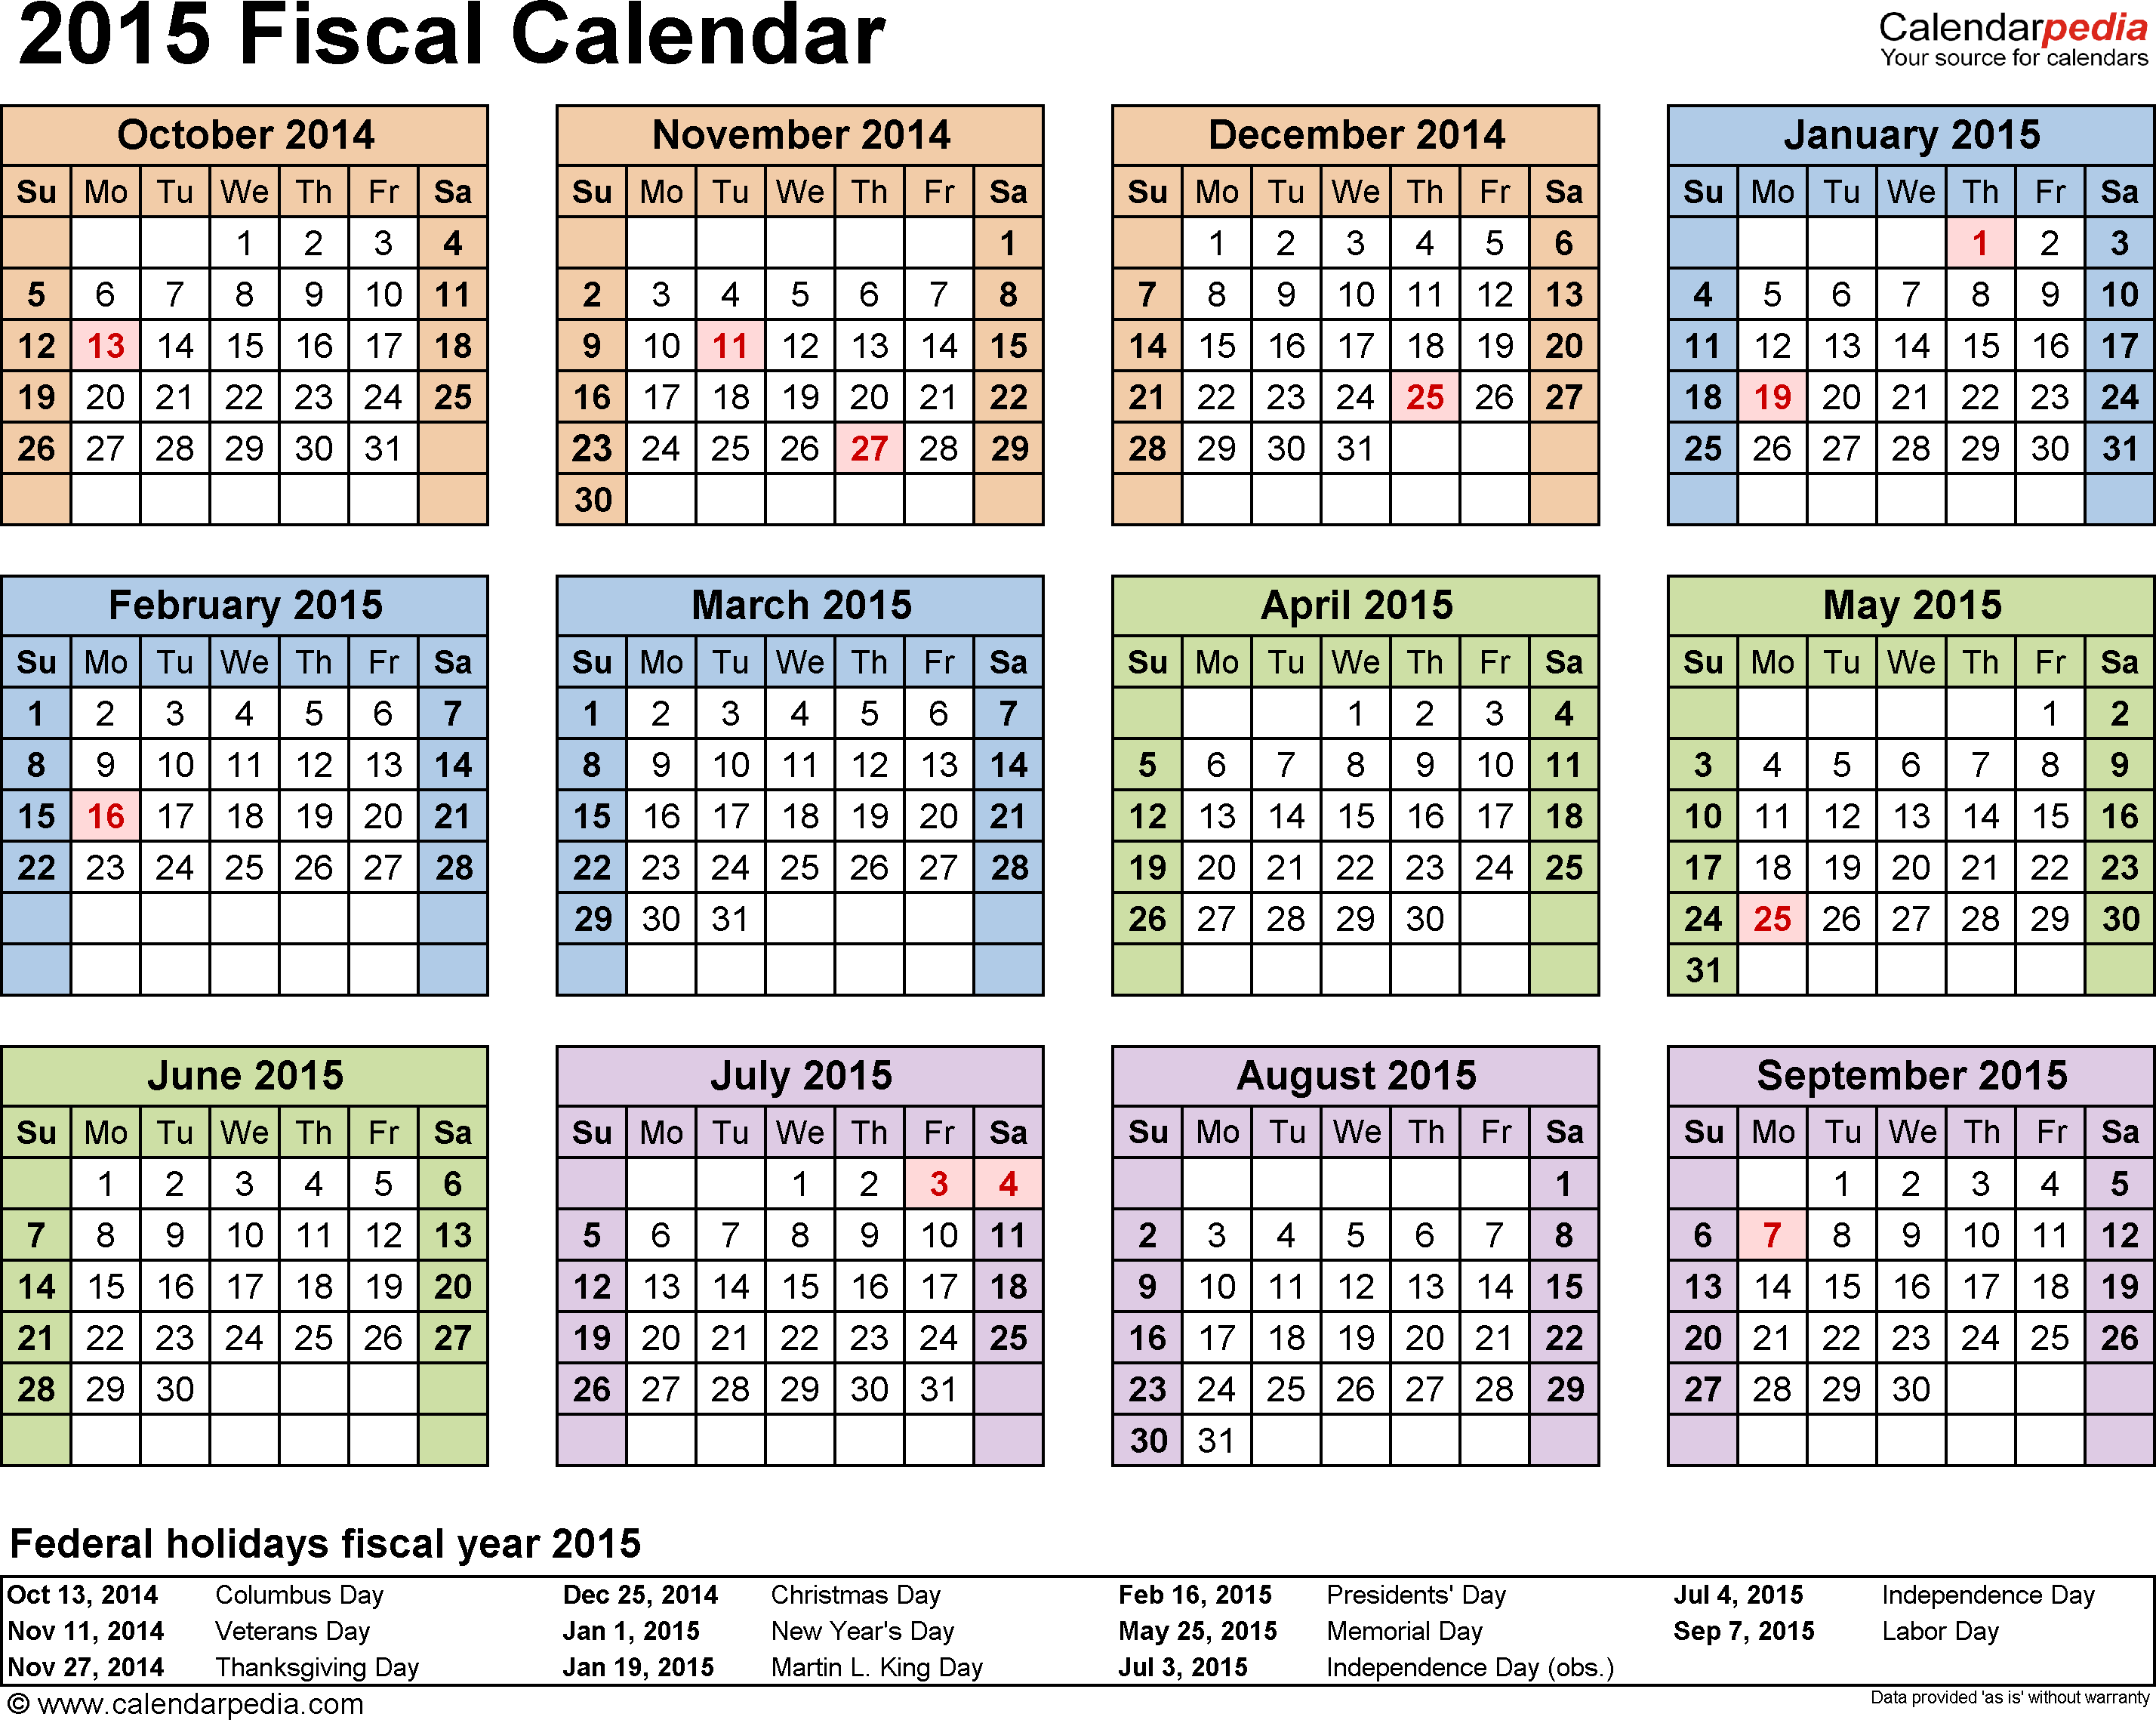 Template 4: Fiscal year calendar 2015 for Excel, landscape orientation, year at a glance, 1 page